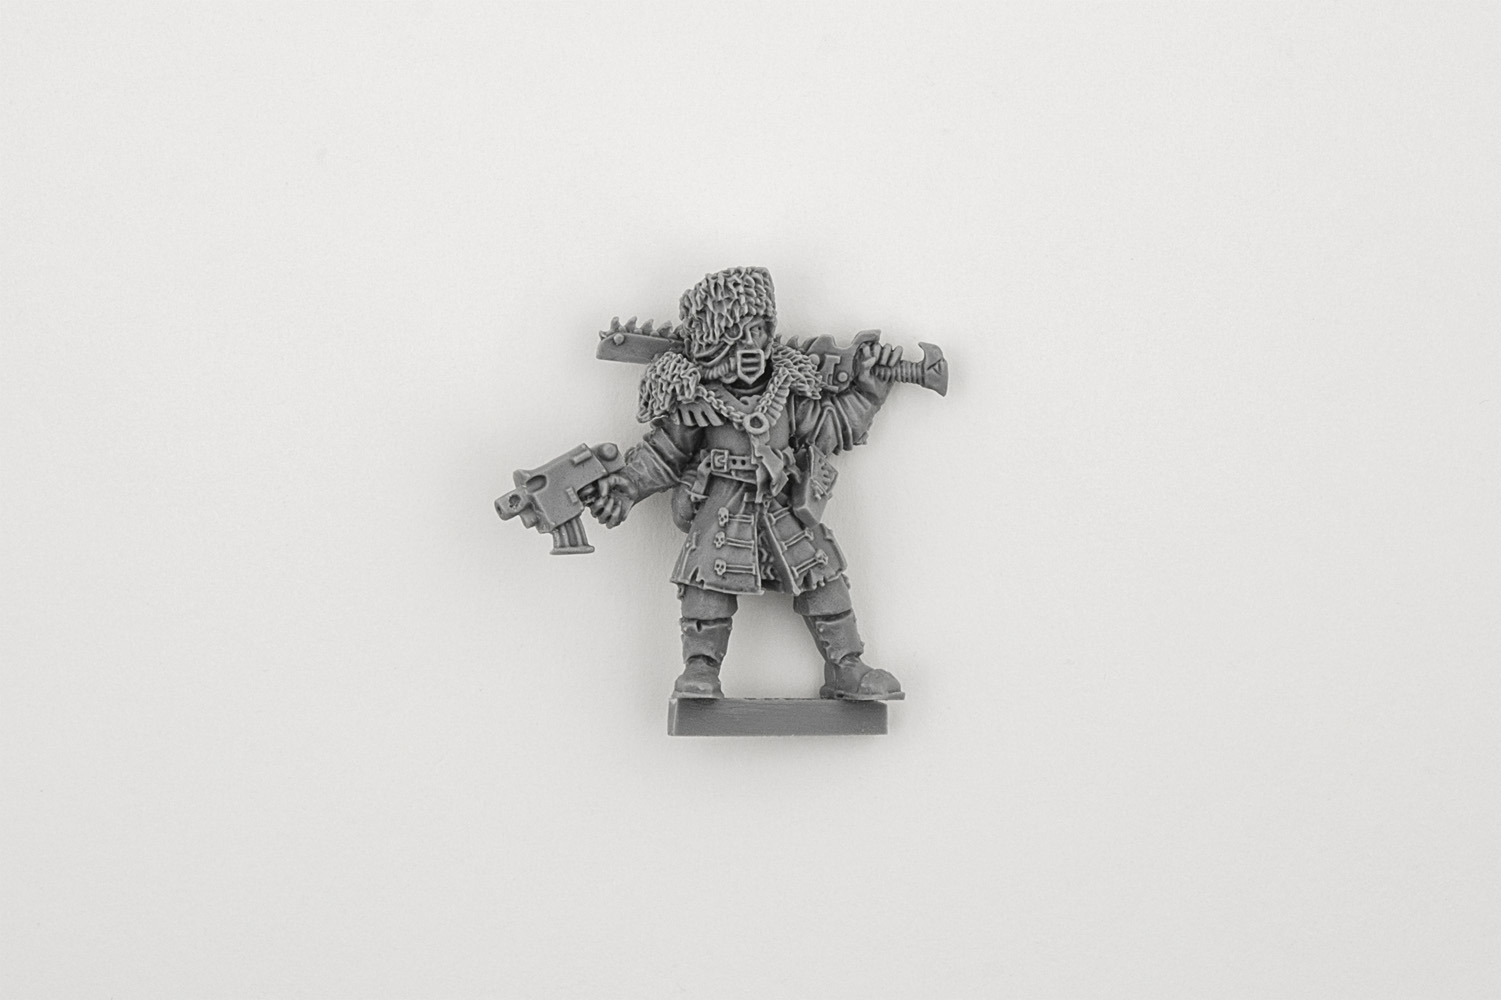 Vostroyan Scions: Vostroyan Officer With Chainsword